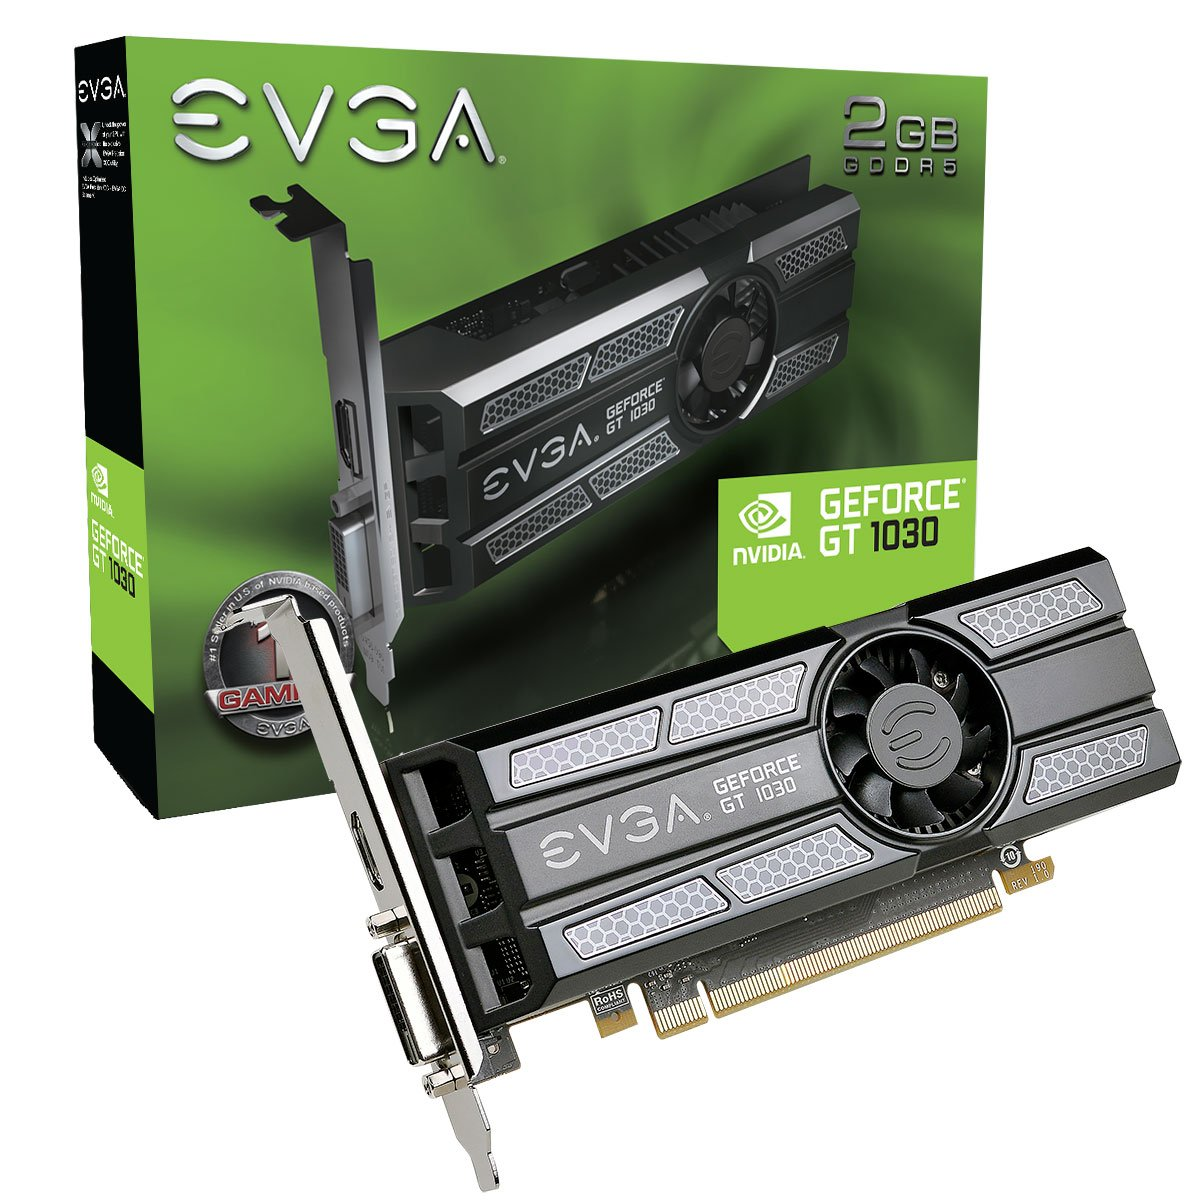 EVGA GeForce GT 1030 SC 2GB GDDR5 Low Profile Graphic Cards 02G-P4-6333-KR by EVGA